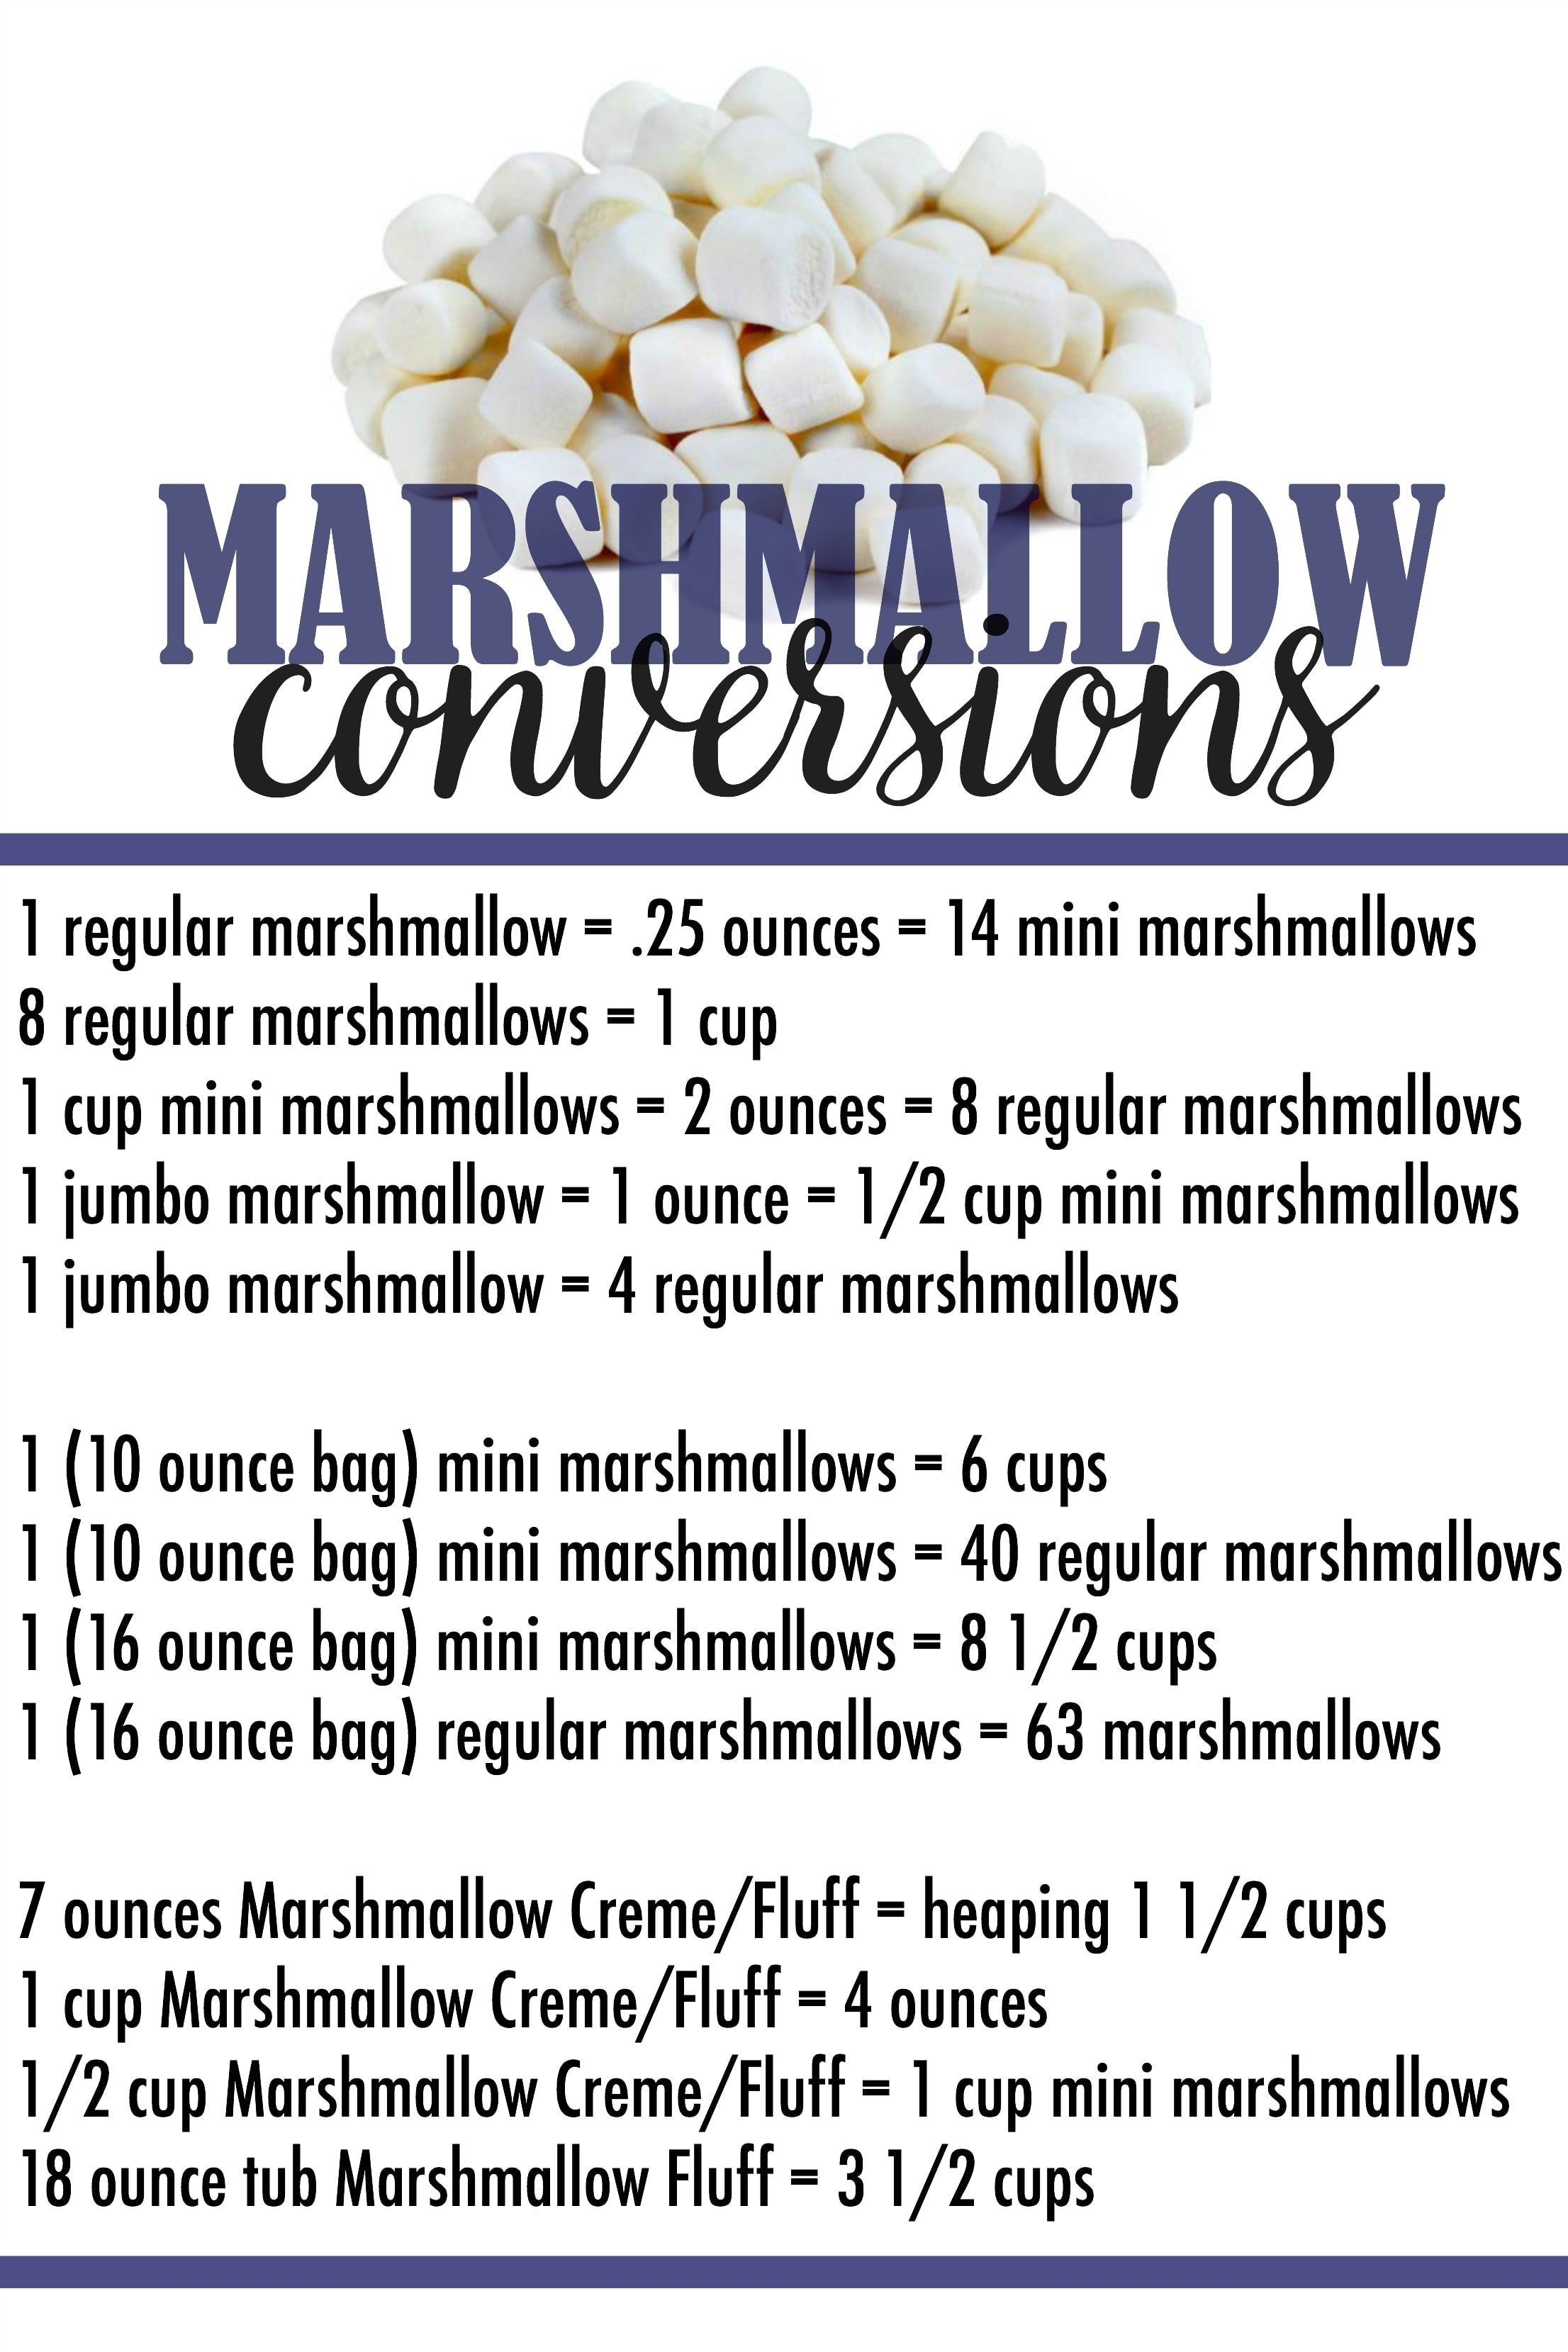 Marshmallow conversions cookies and cups marshmallow conversion chart all my marshmallow questions answered nvjuhfo Image collections